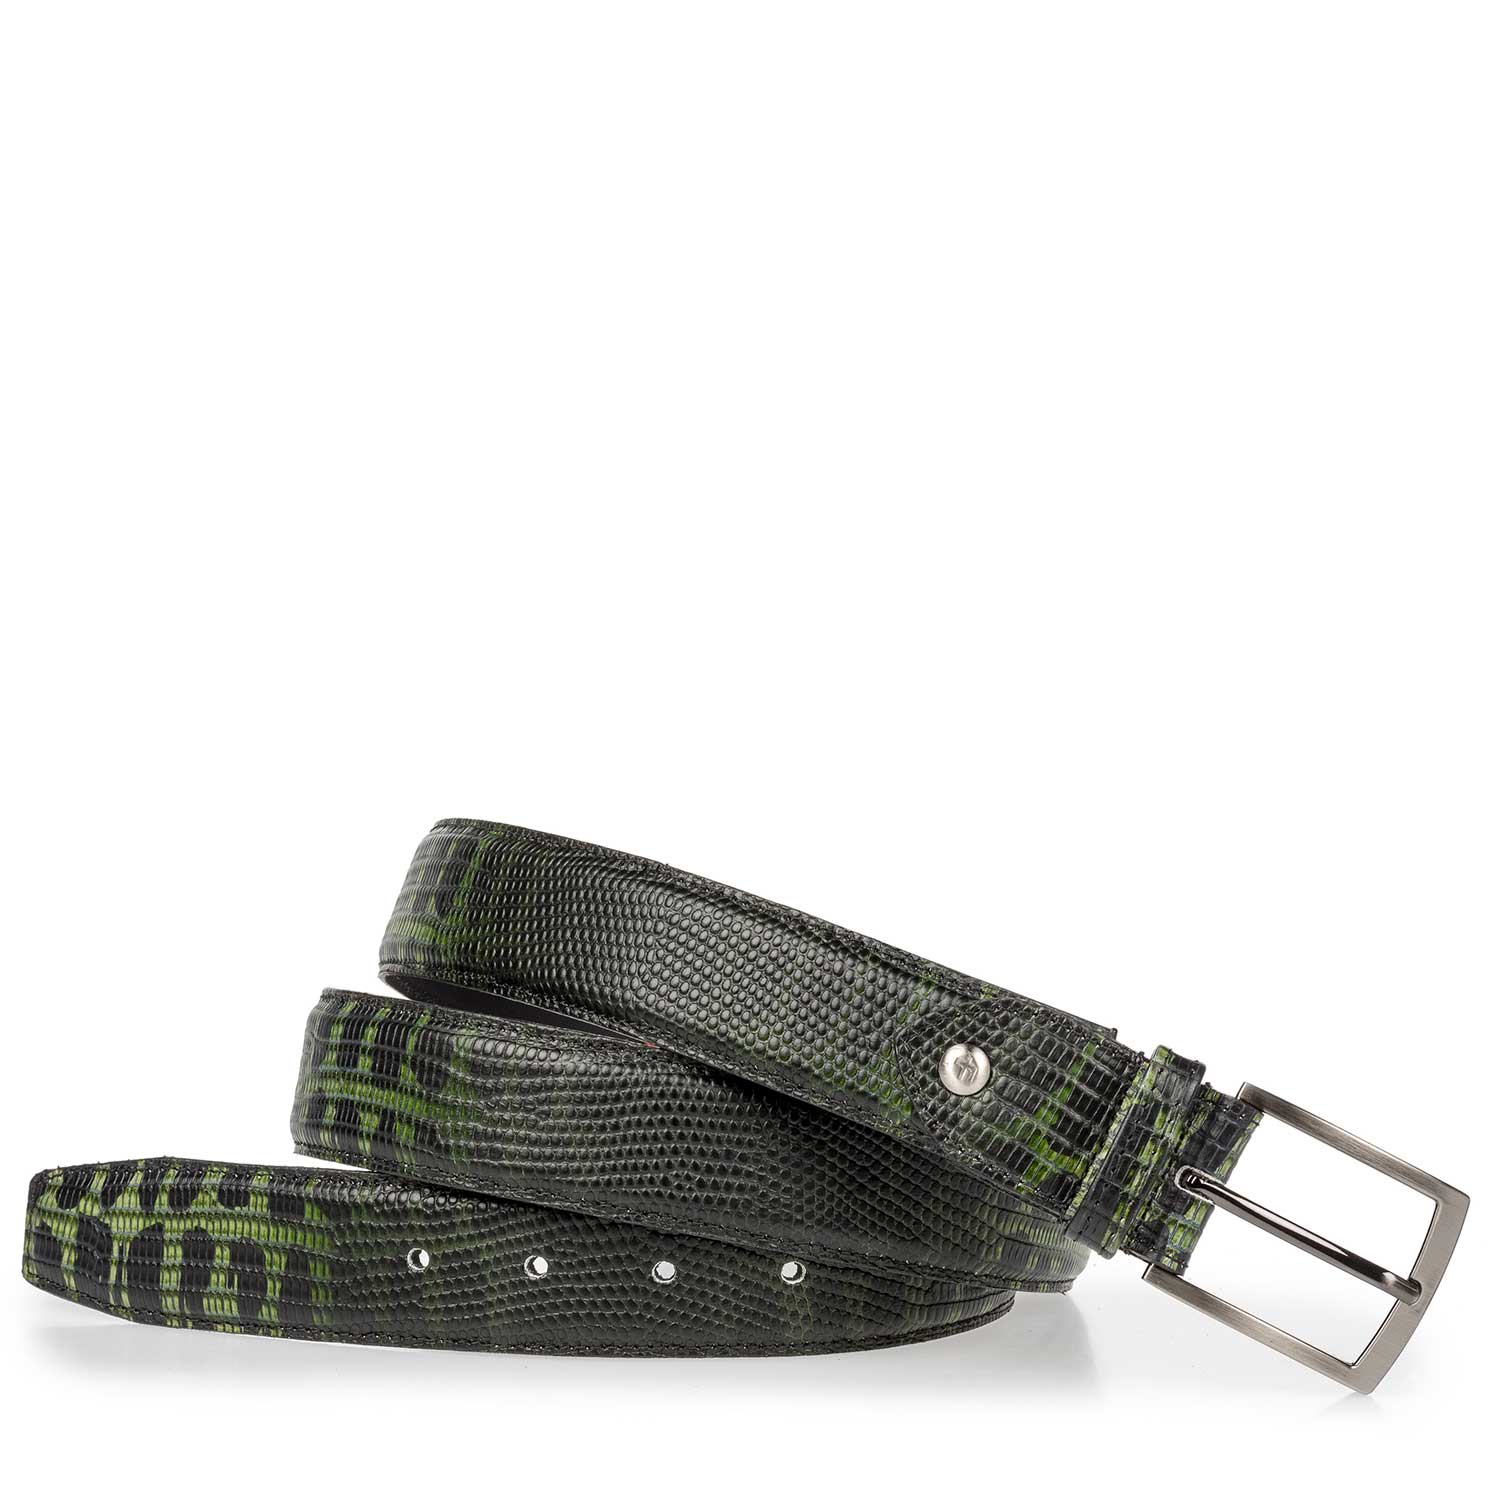 75190/30 - Belt made of green calf's leather with a lizard relief pattern